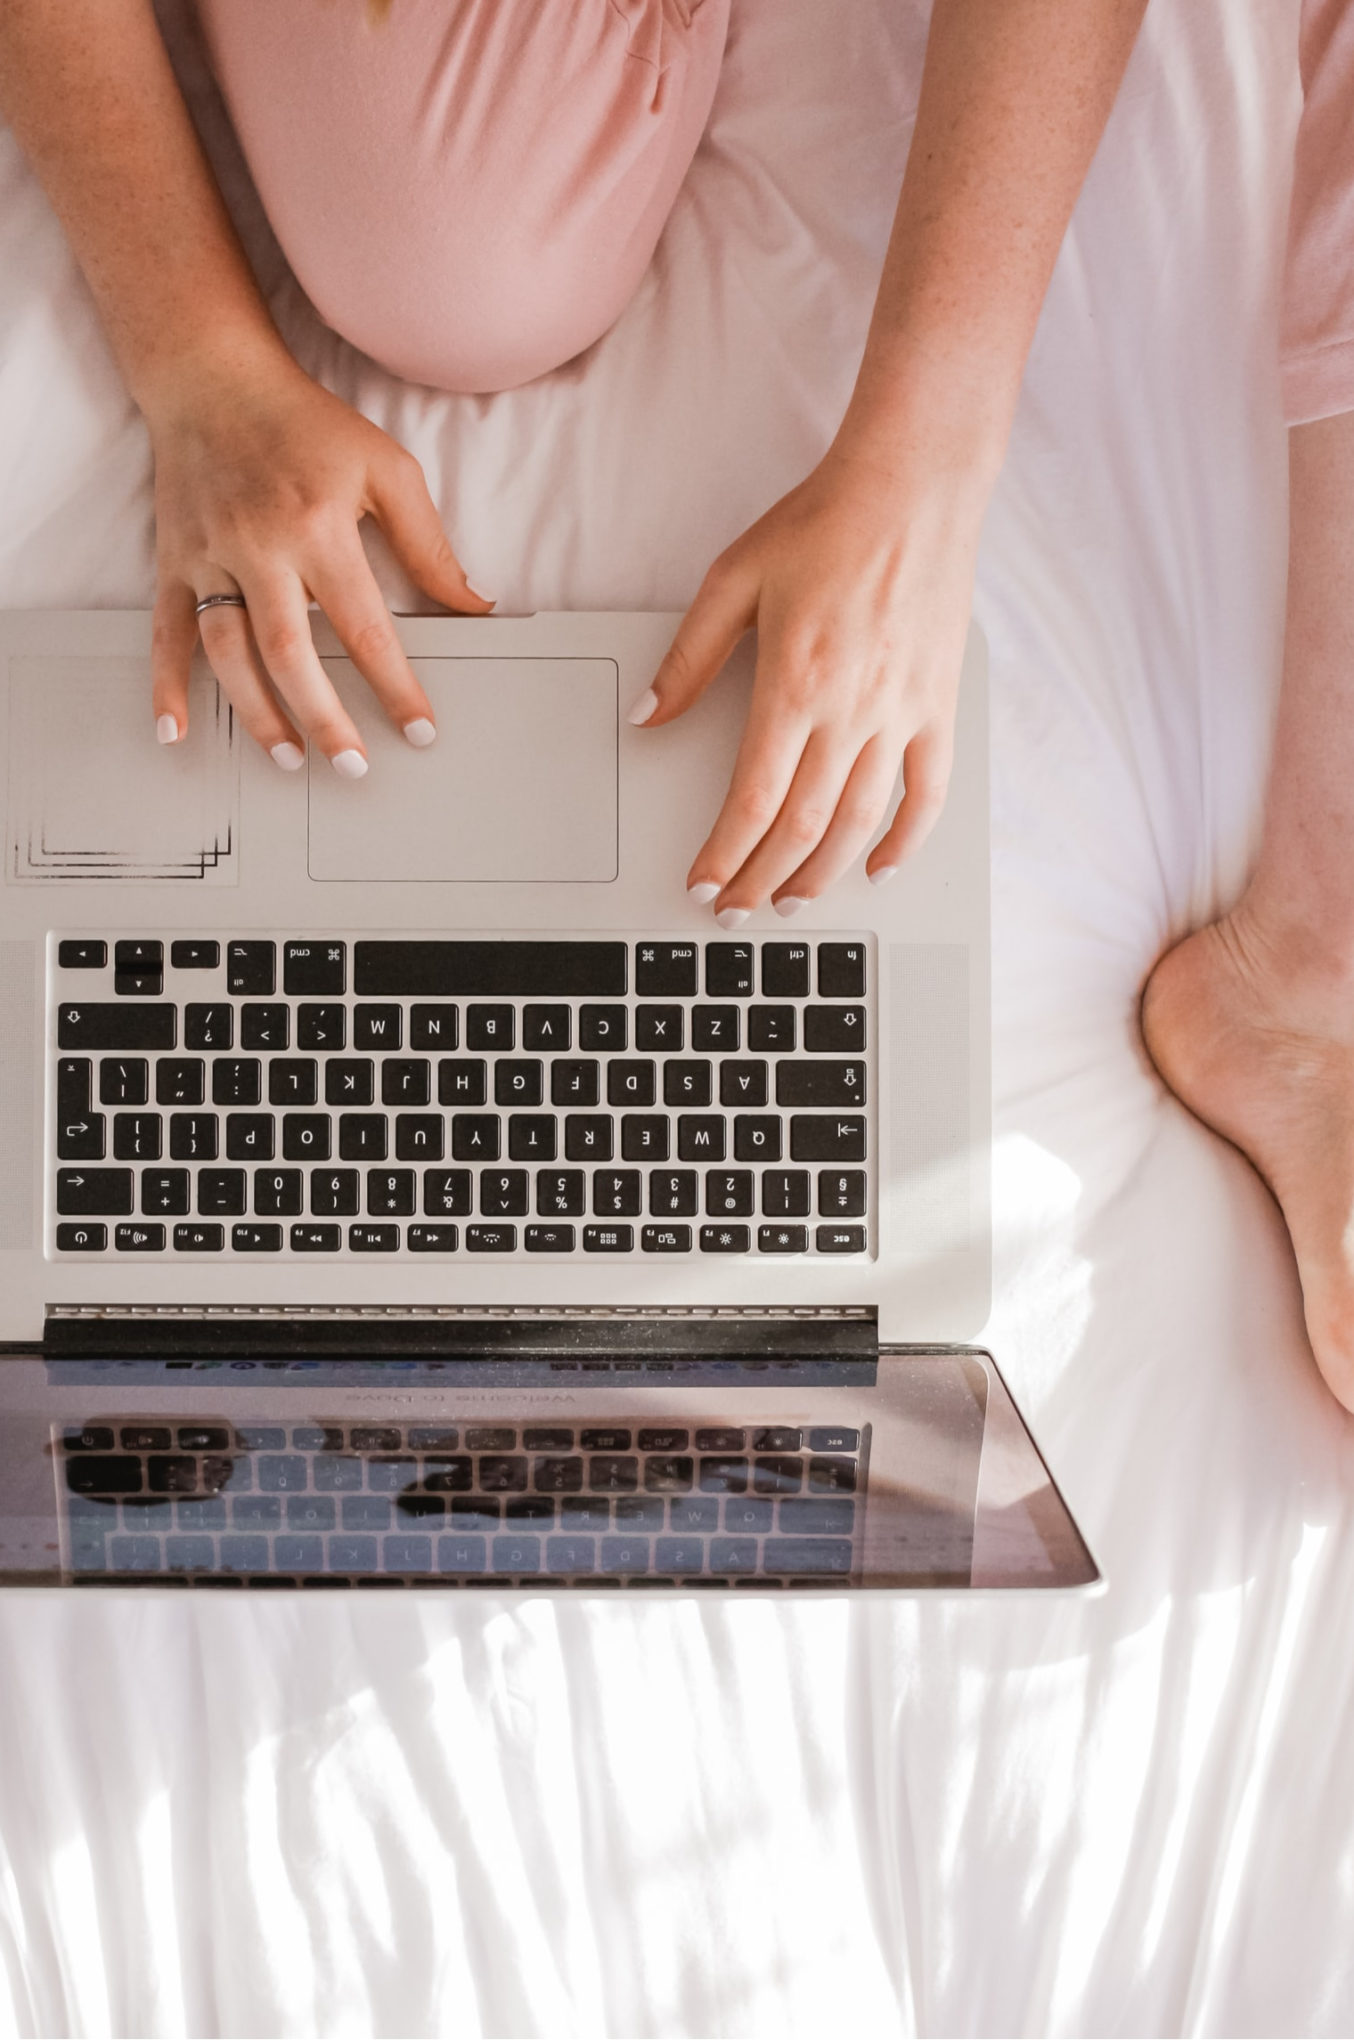 Tips on Working From Home With Children